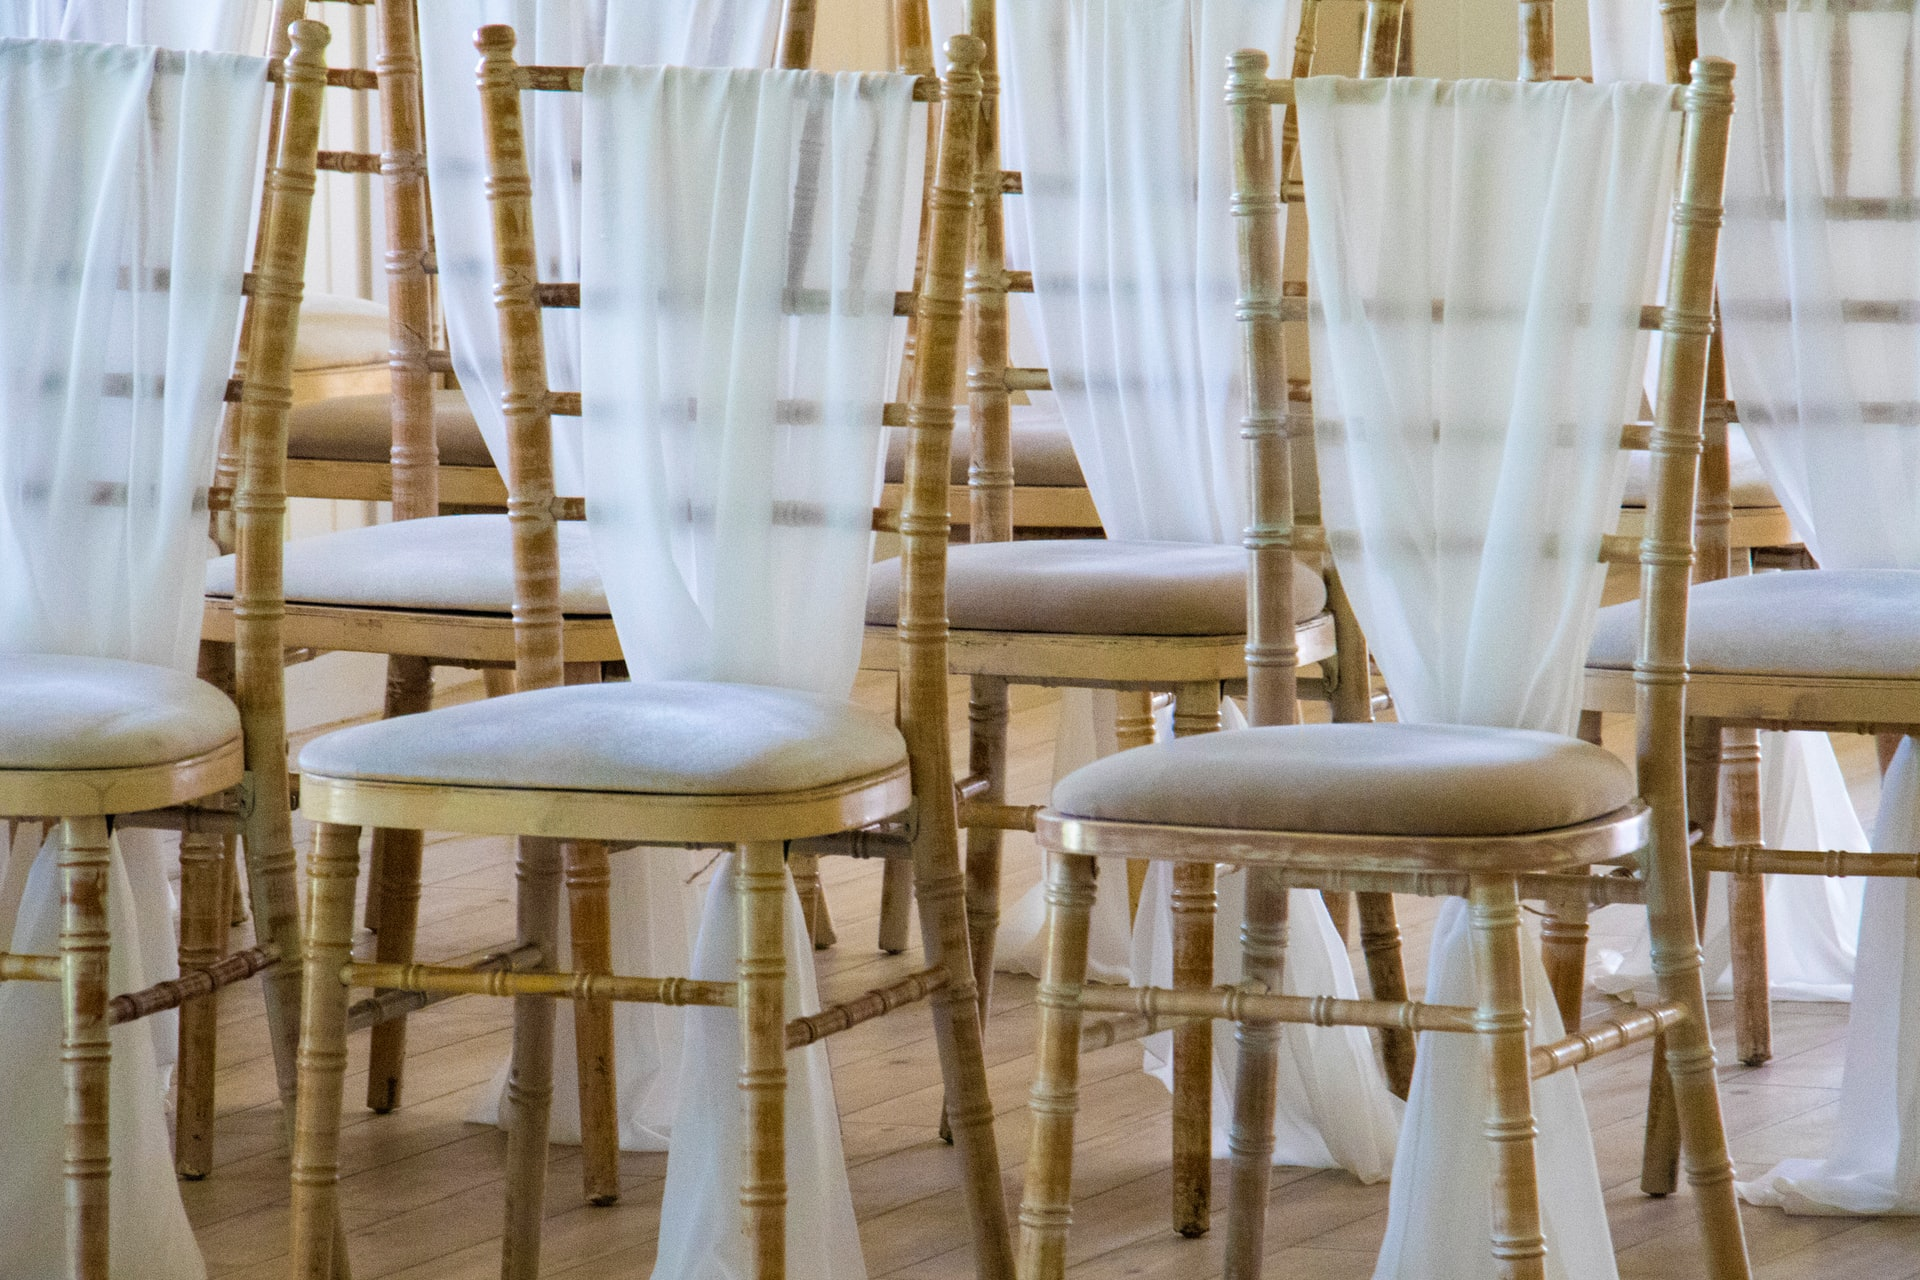 chairs with wedding decorations